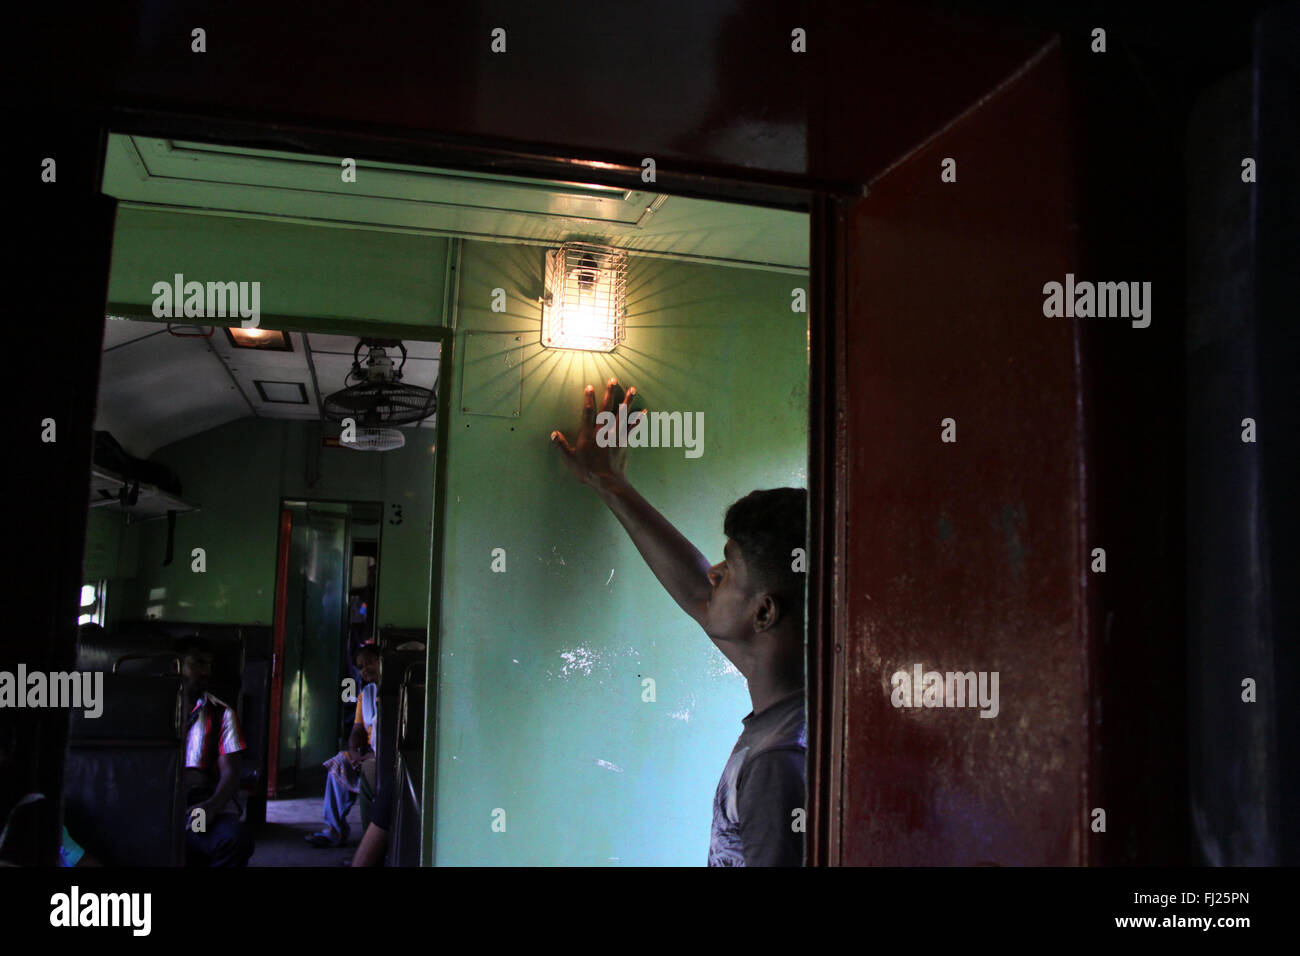 Man looking at light in train in Sri Lanka - Stock Image